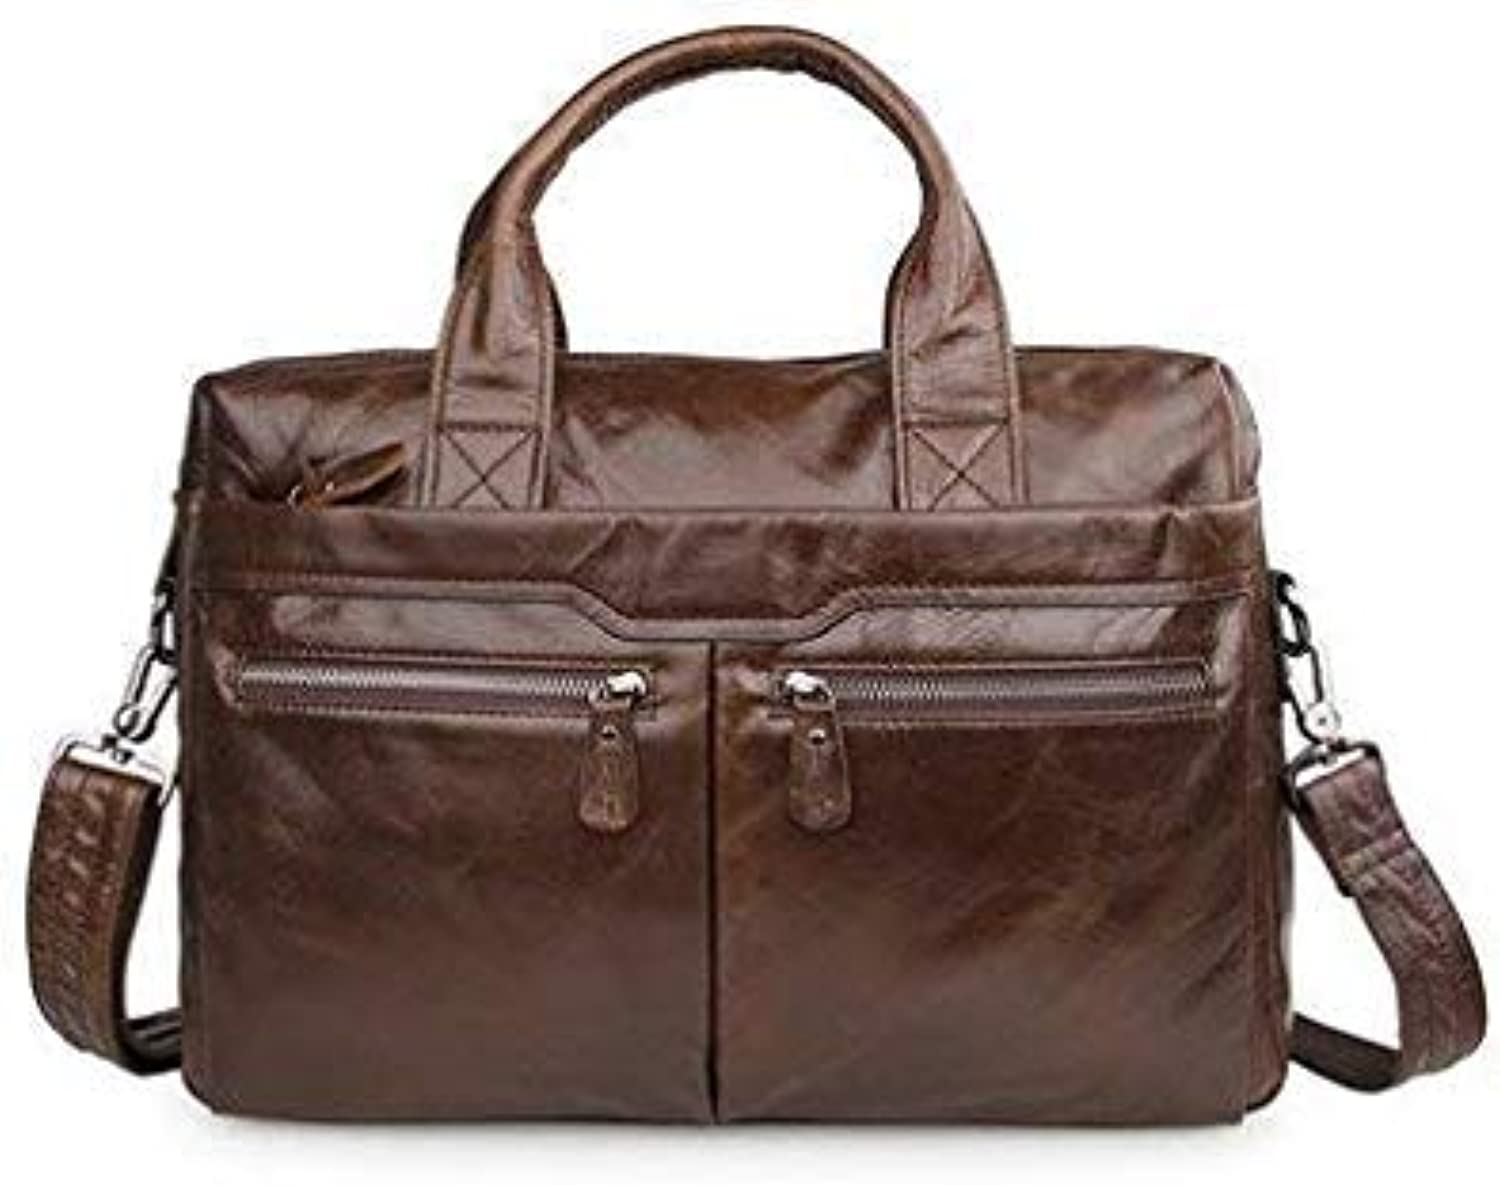 Bloomerang ALAVCHNV Design New Men's Suede Leather Portable Business one Shoulder Large Capacity Crossbody Bag 7122 color Chocolate Size